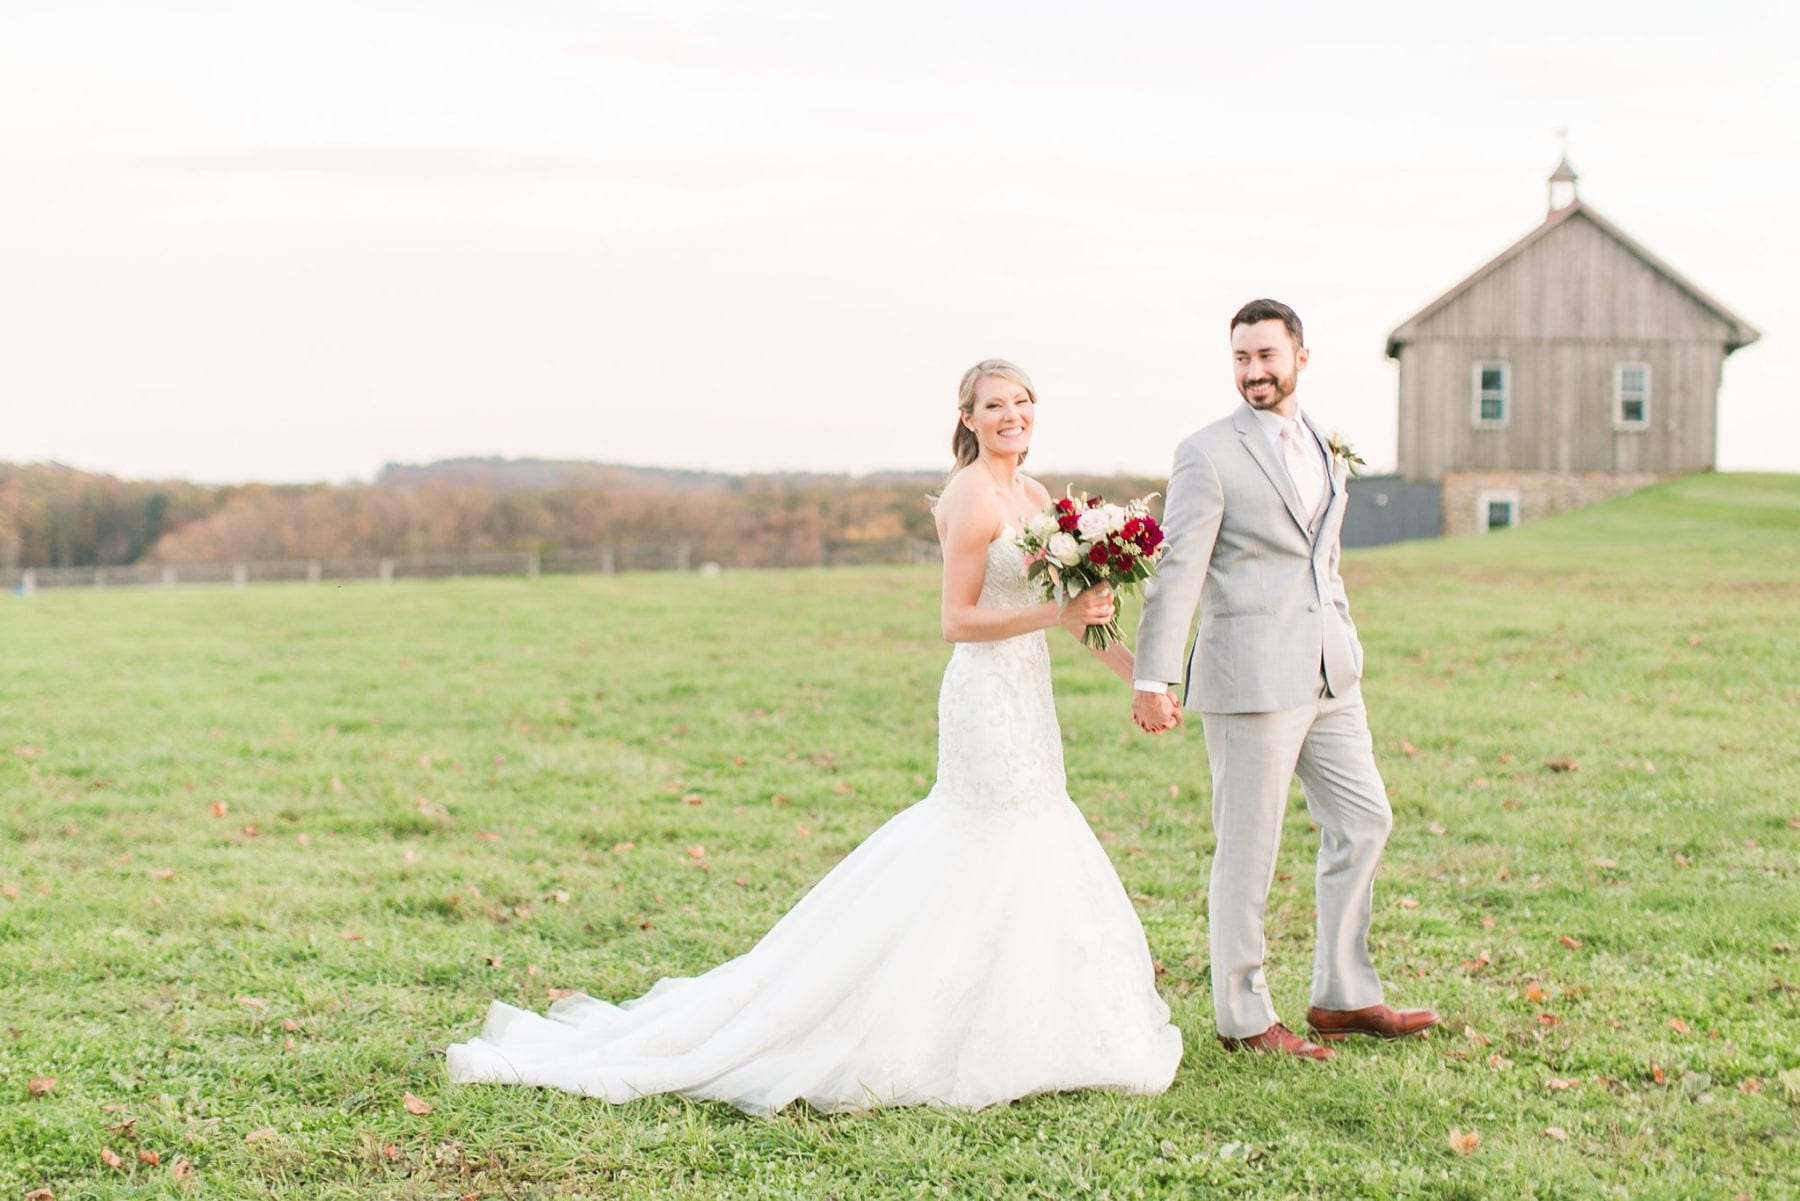 Wyndridge Farm Wedding Photos Dallastown Pennsylvania Wedding Photographer Megan Kelsey Photography Heather & Matt-714.jpg